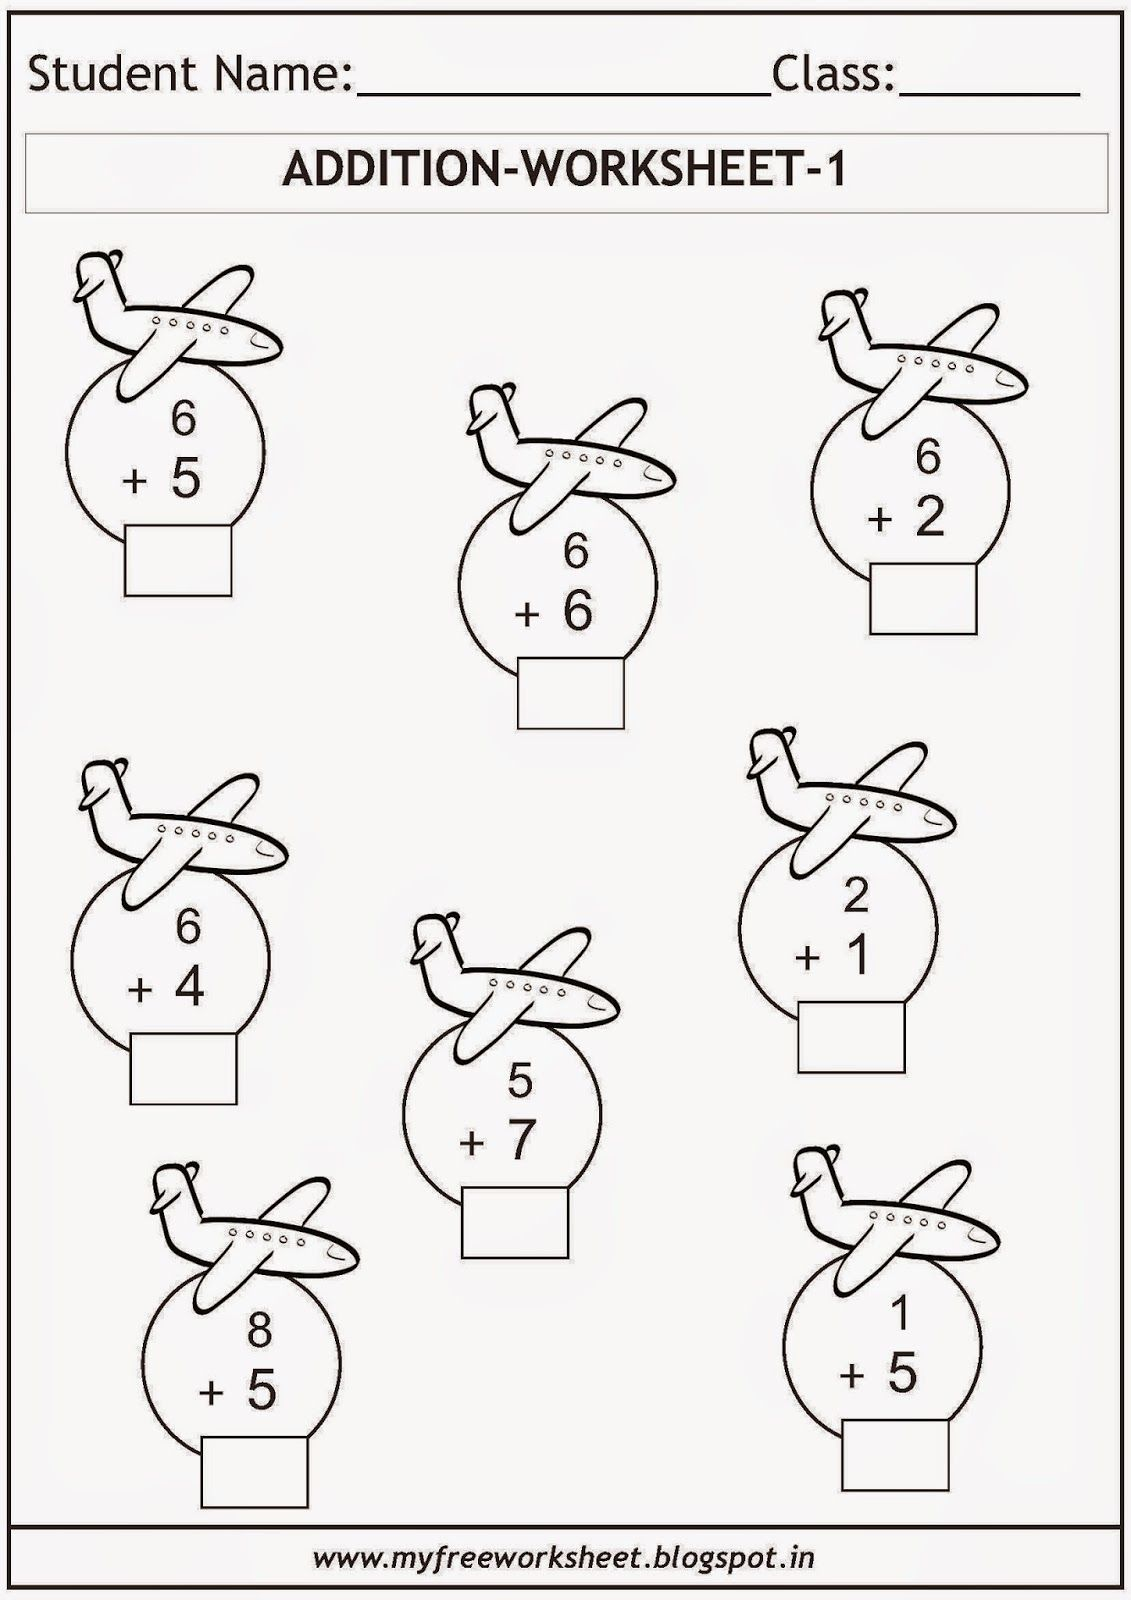 Free Printable Math Worksheets For Grade 1 Kids Includes